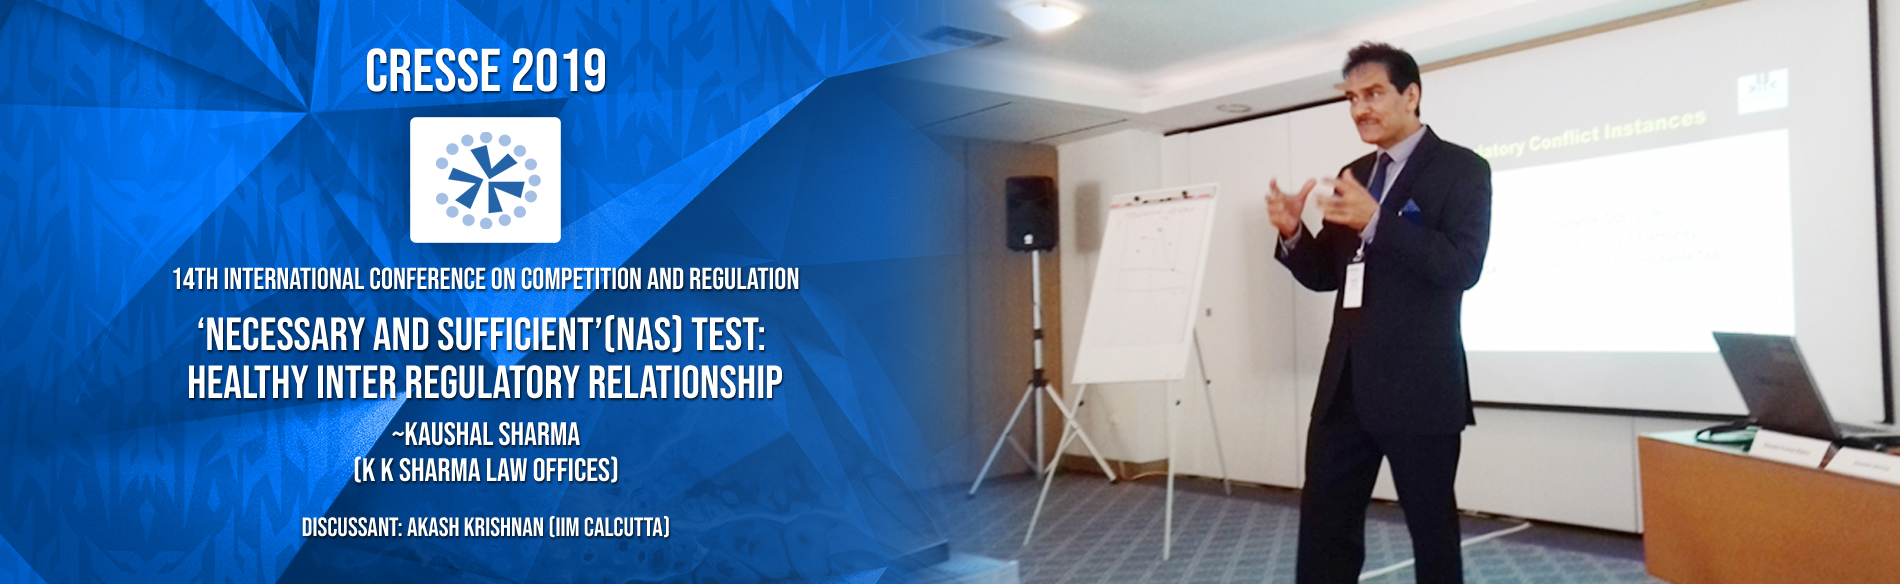 14th International Conference on Competition and Regulation, CRESSE 2019